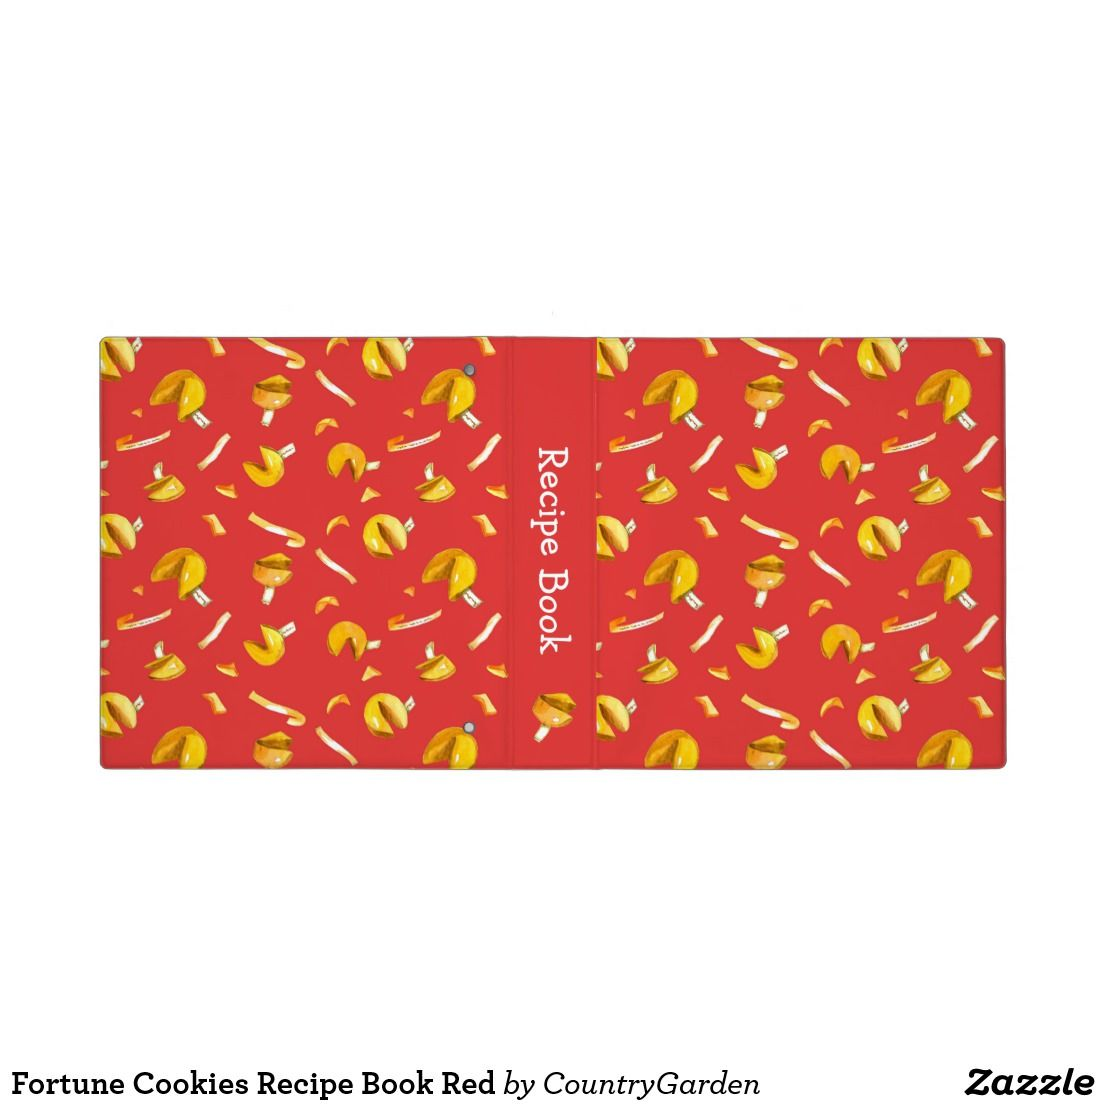 Fortune Cookies Recipe Book Red 3 Ring Binder